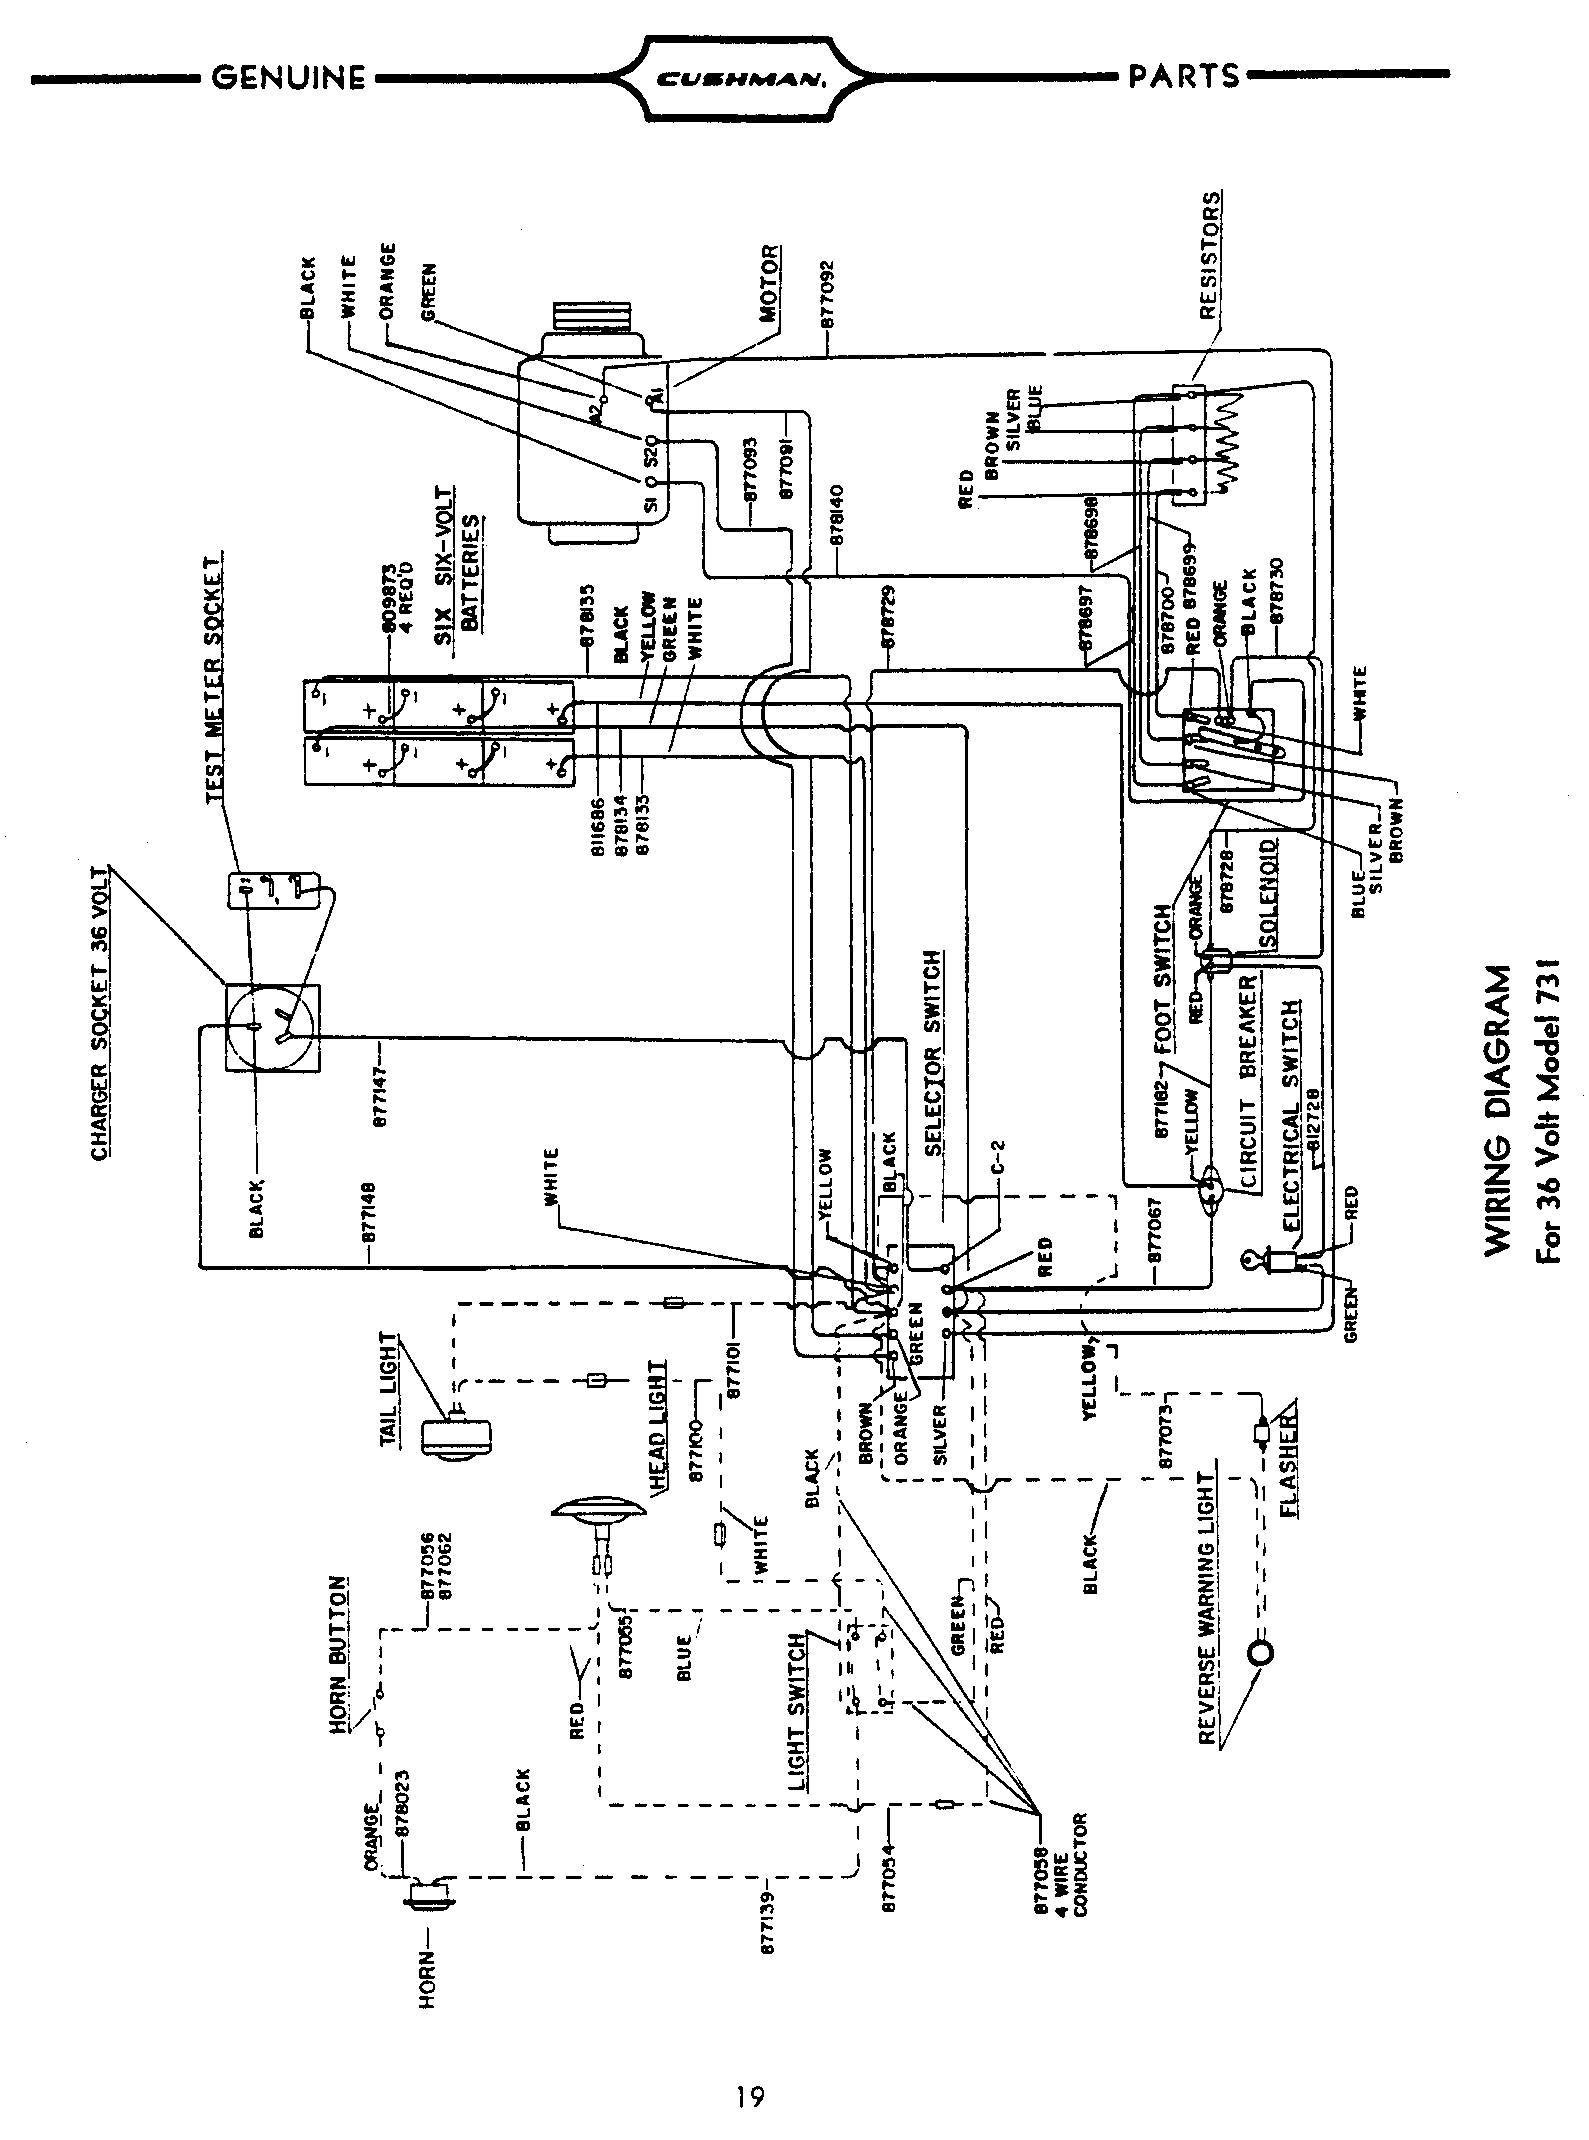 1988 Electric Club Car Schematic Ds 6087] 36 Volt Club Car Wiring Diagram Schematic Of 1988 Electric Club Car Schematic